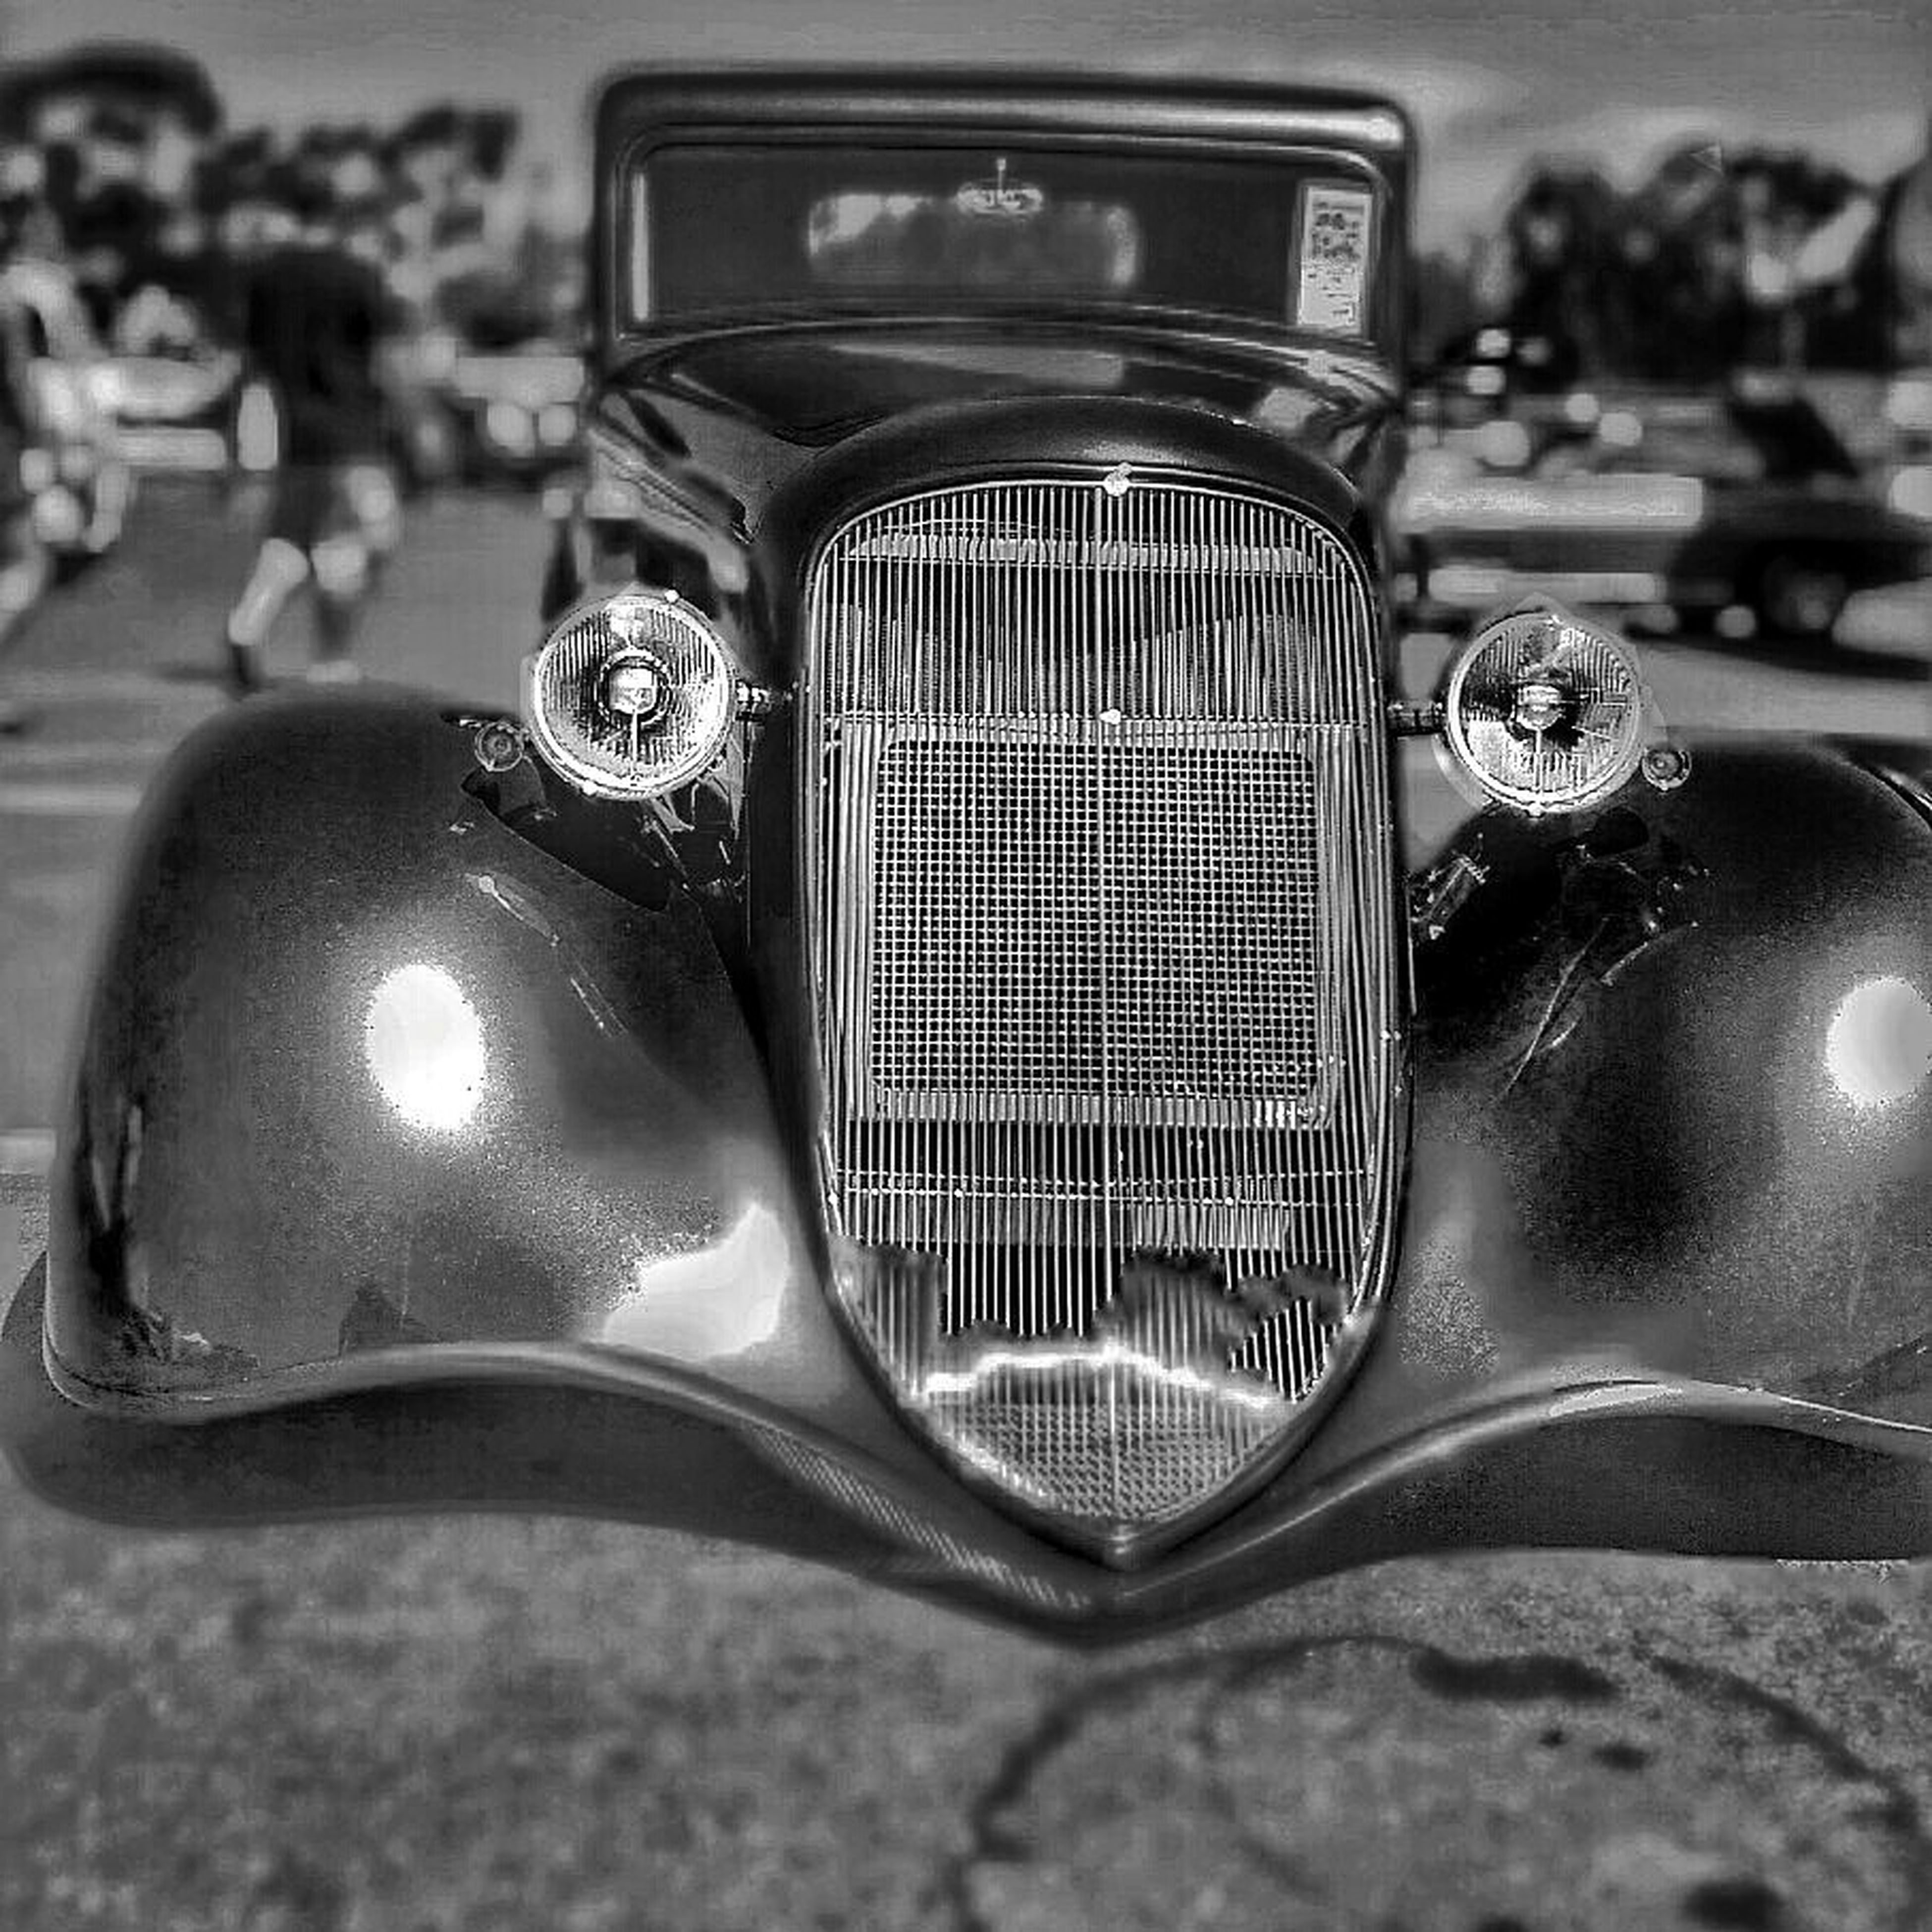 close-up, focus on foreground, old-fashioned, retro styled, car, indoors, still life, reflection, selective focus, metal, land vehicle, shiny, technology, music, arts culture and entertainment, headlight, no people, single object, sunglasses, antique